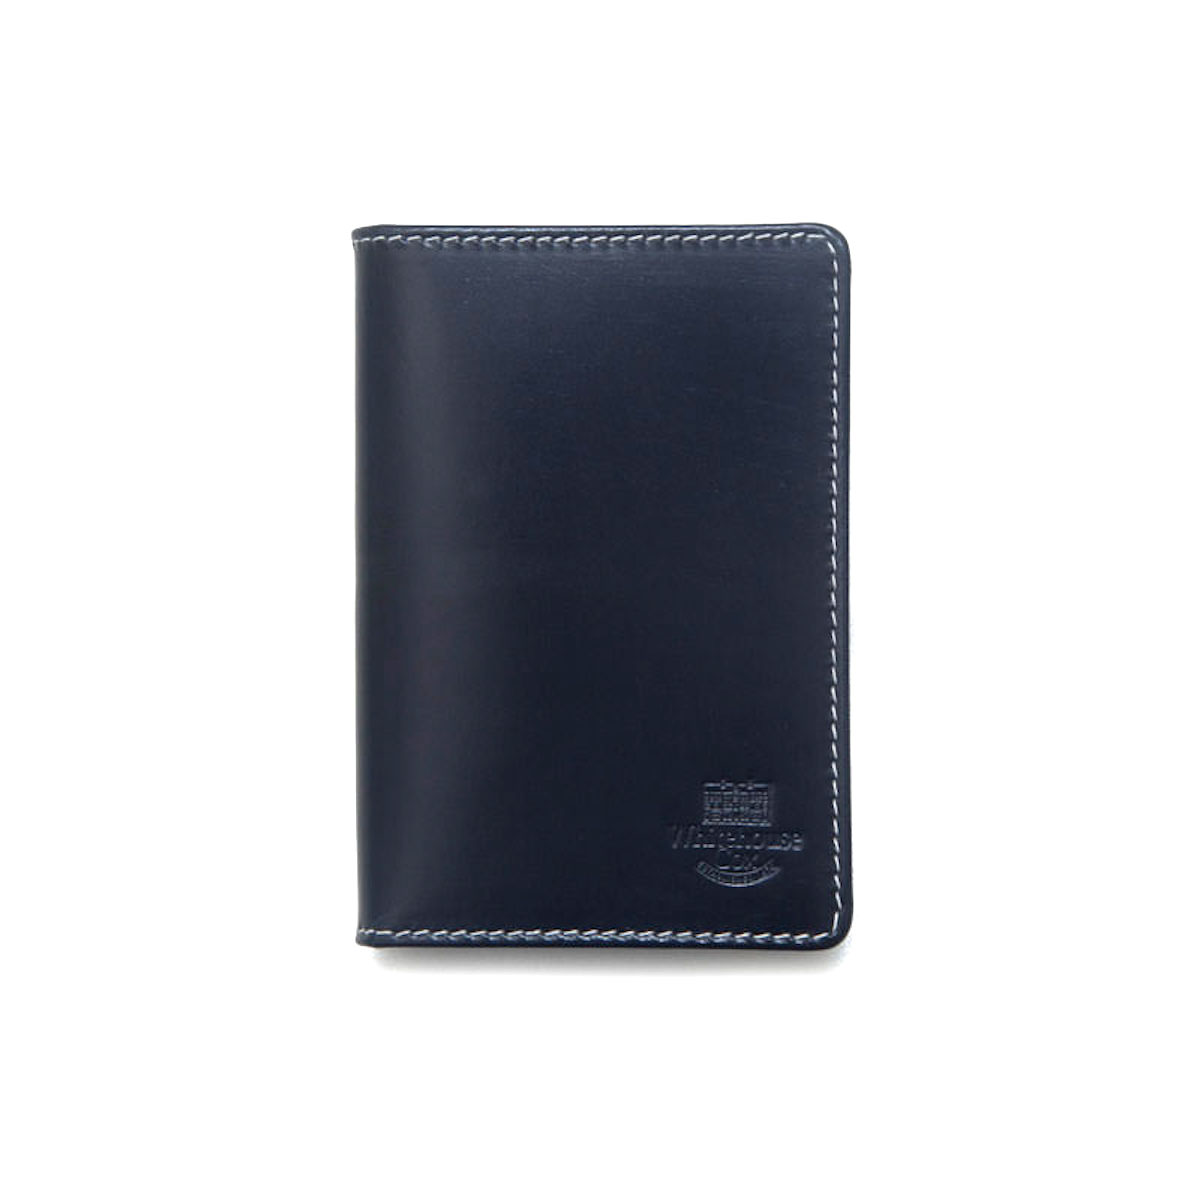 WHITEHOUSE COX / S7412 NAME CARD CASE (Navy×Espresso)